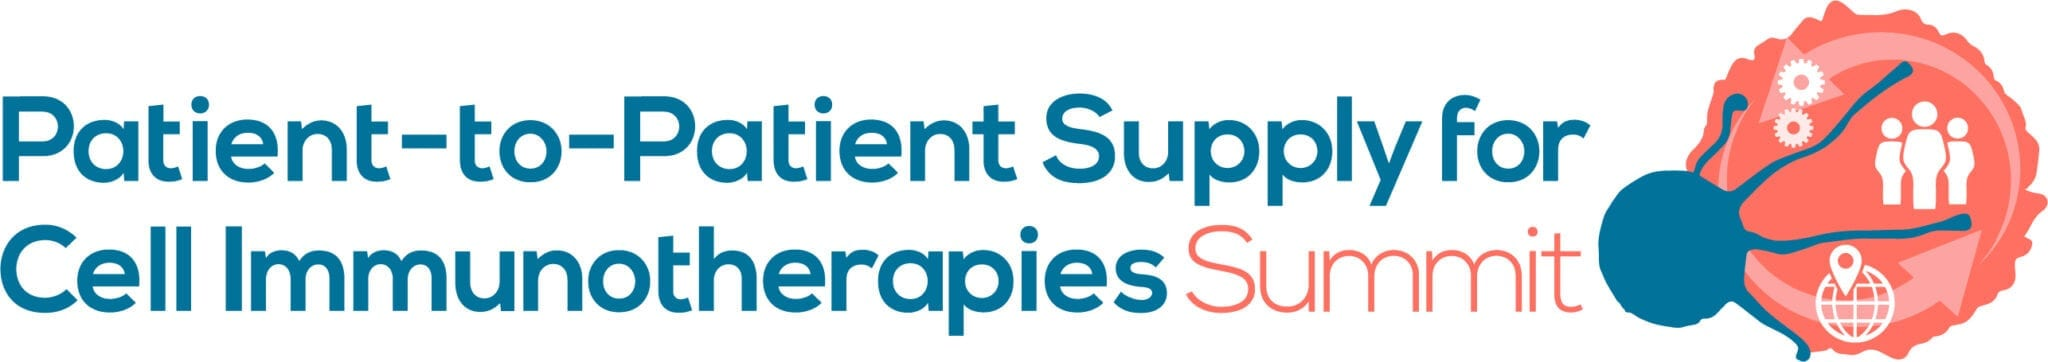 17610-Patient-to-Patient-Supply-for-Cell-Immunotherapies-Summit-logo-scaled